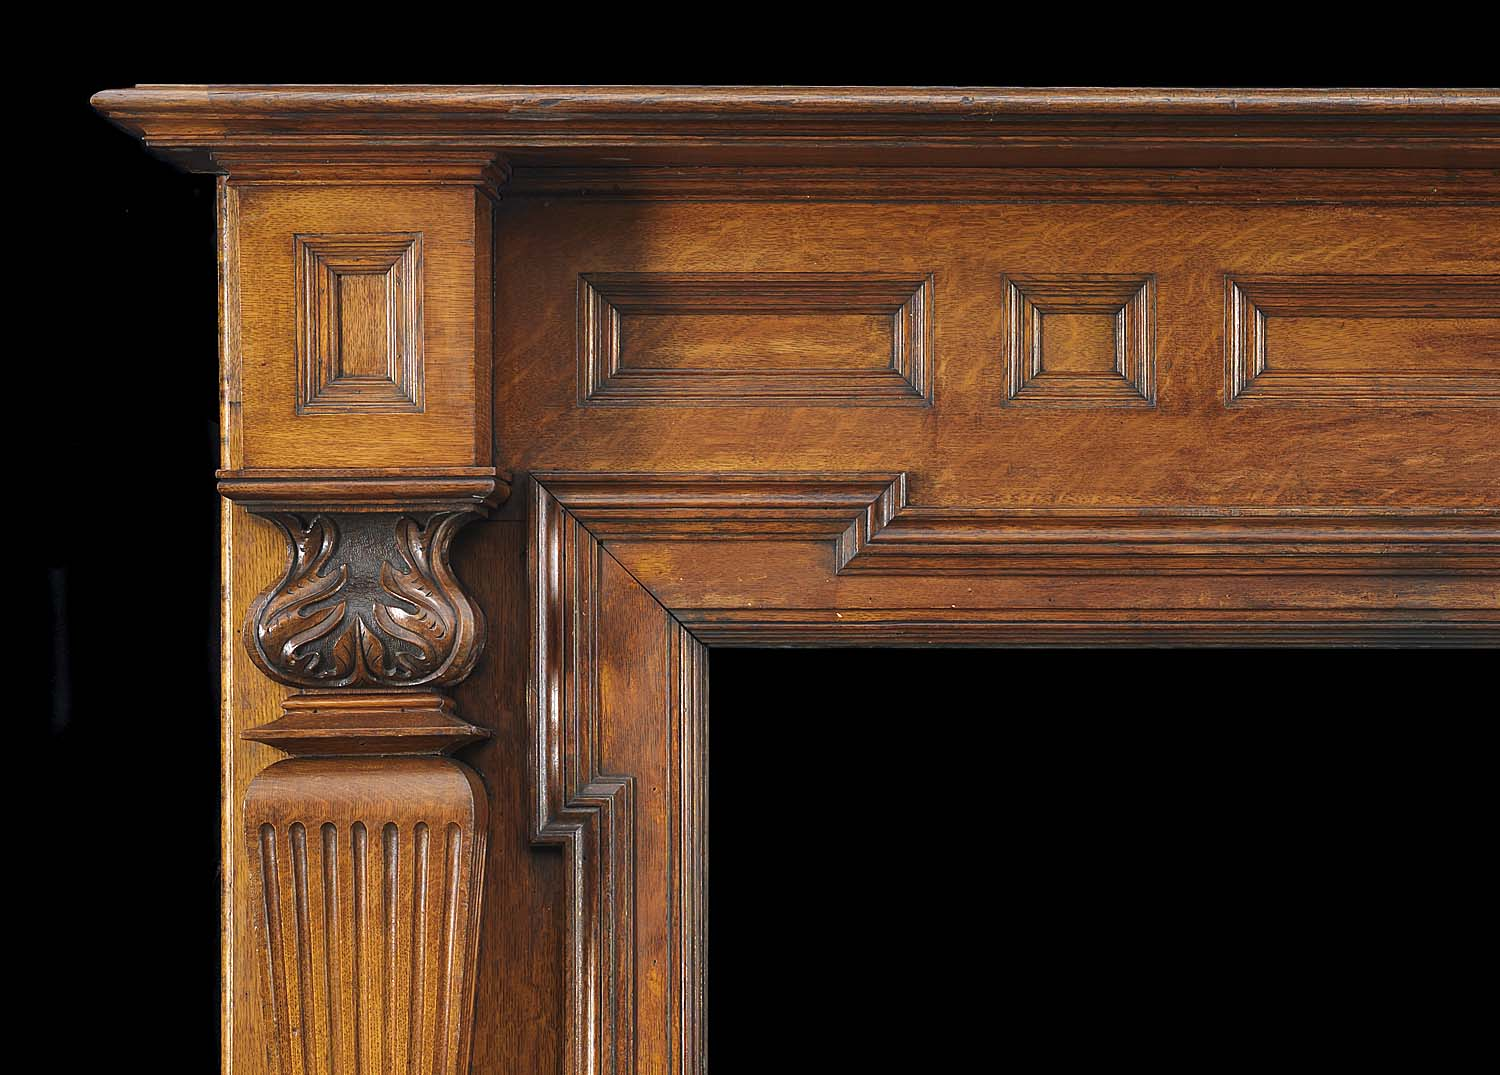 A large antique carved oak fireplace surround in the Palladian style